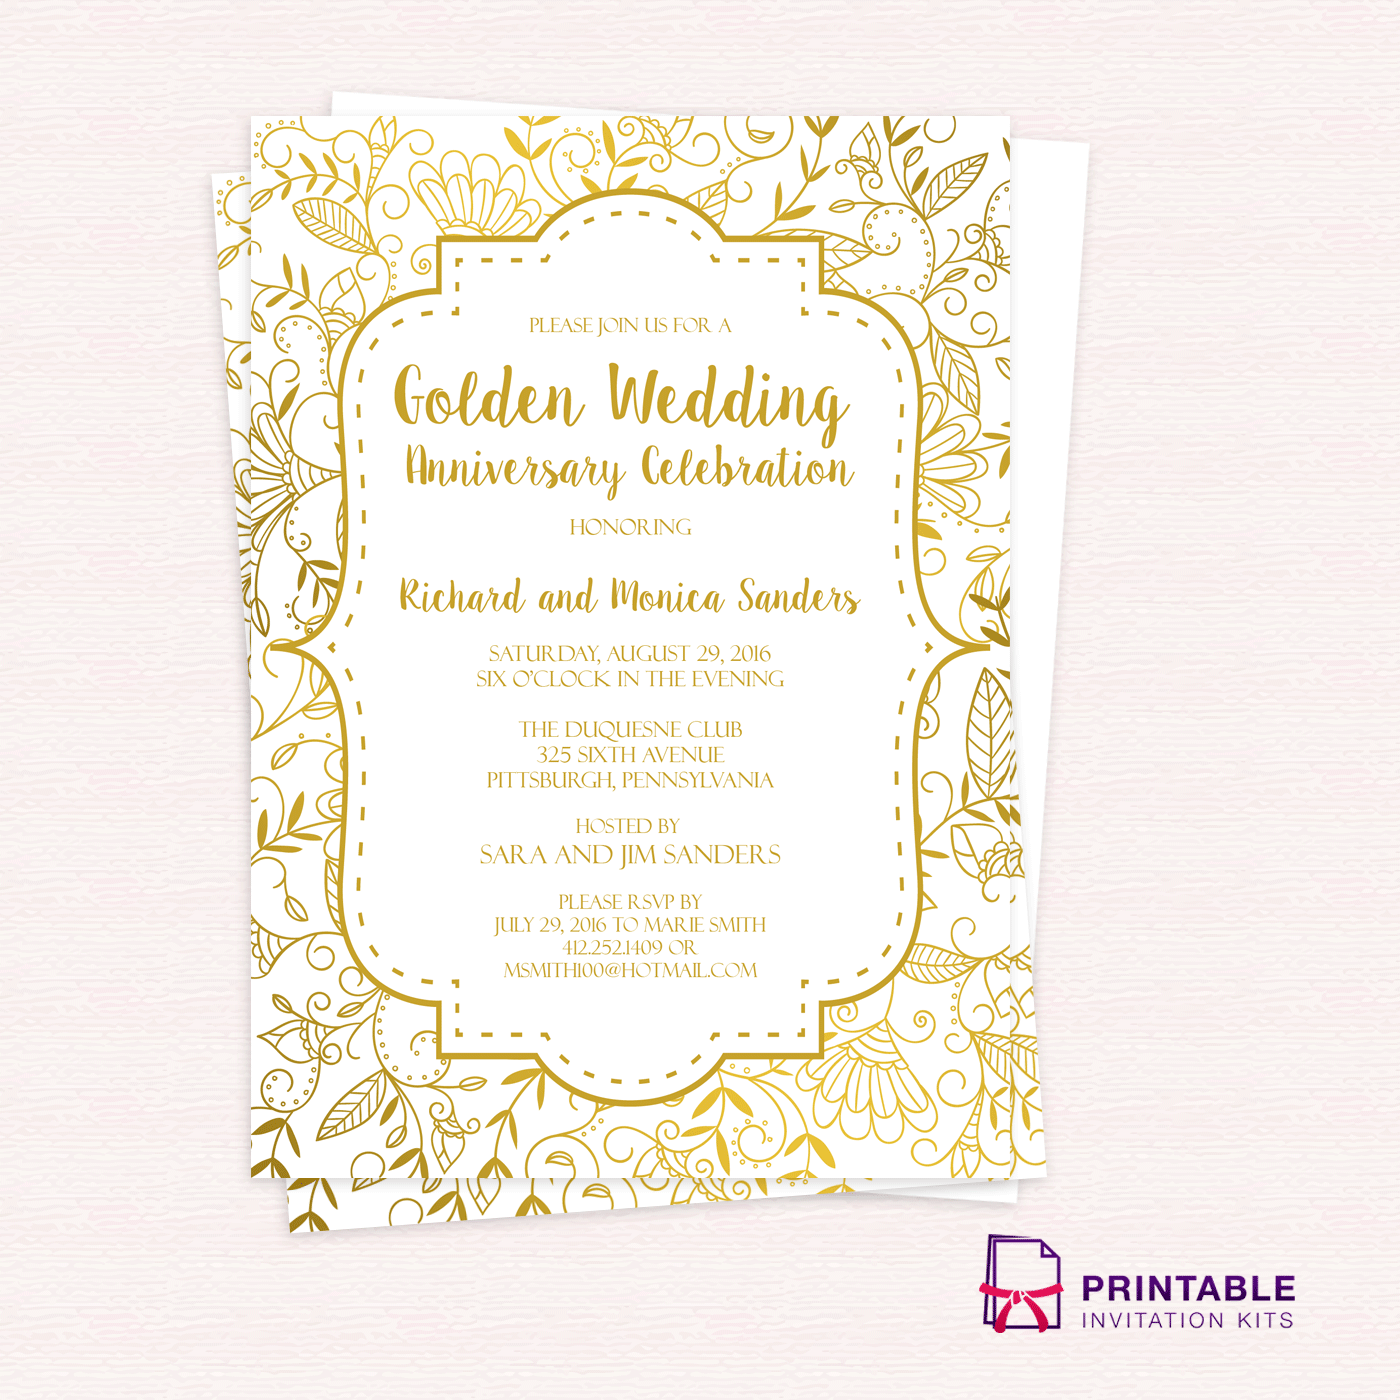 ... And Co Invitation Template Golden Wedding Anniversary Invitation  Template Wedding ...